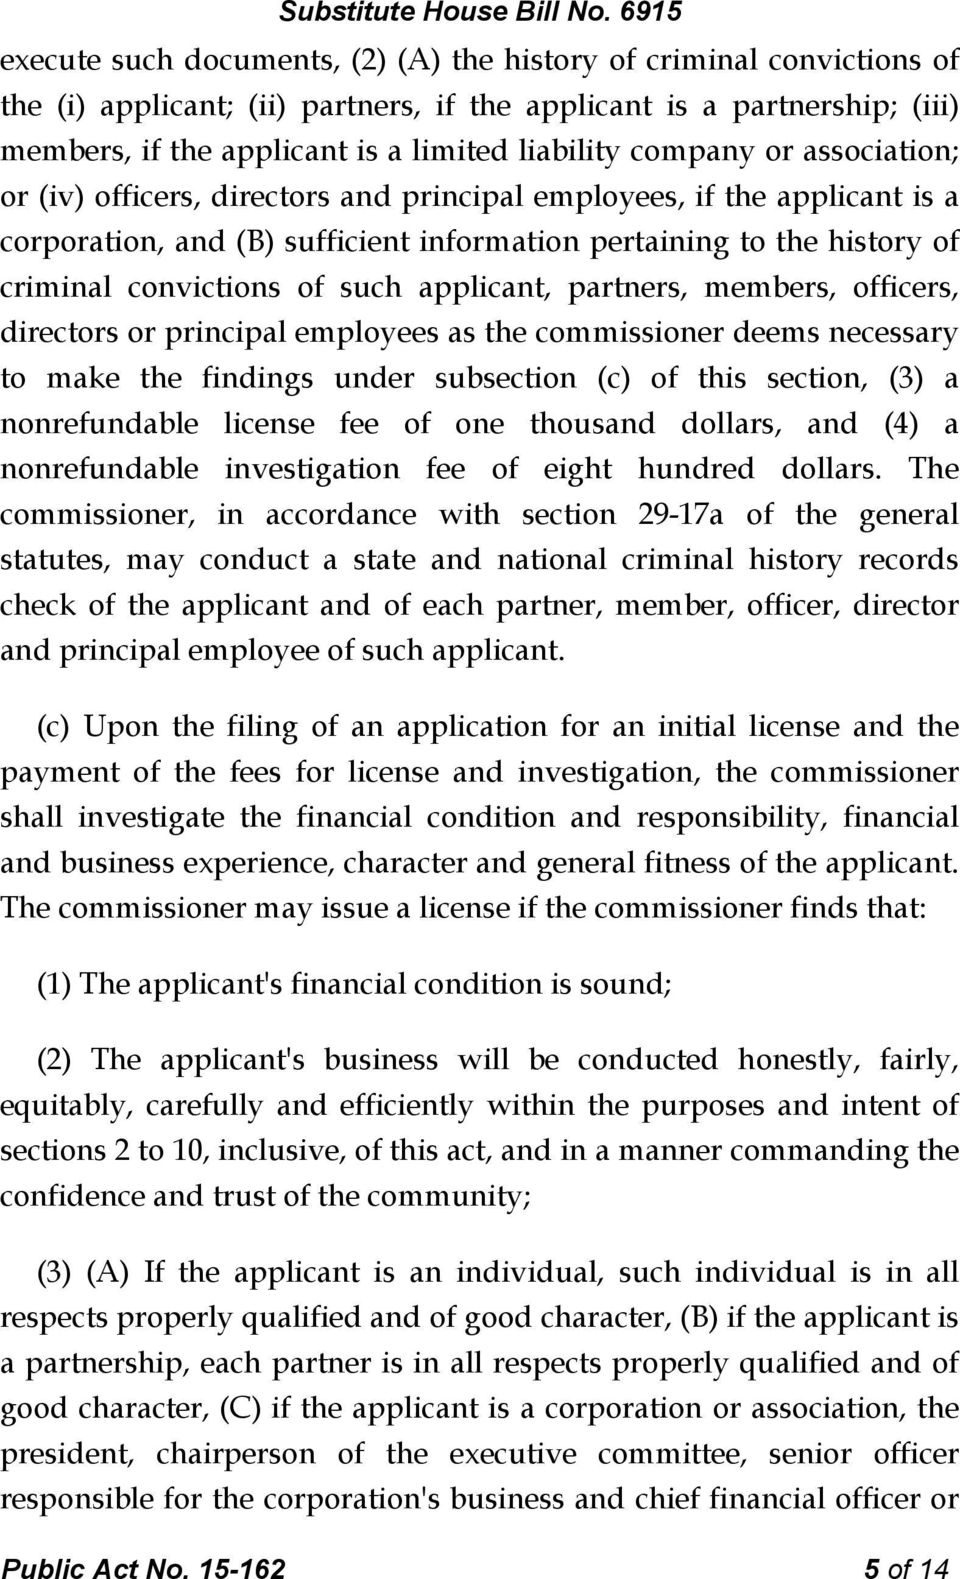 such applicant, partners, members, officers, directors or principal employees as the commissioner deems necessary to make the findings under subsection (c) of this section, (3) a nonrefundable